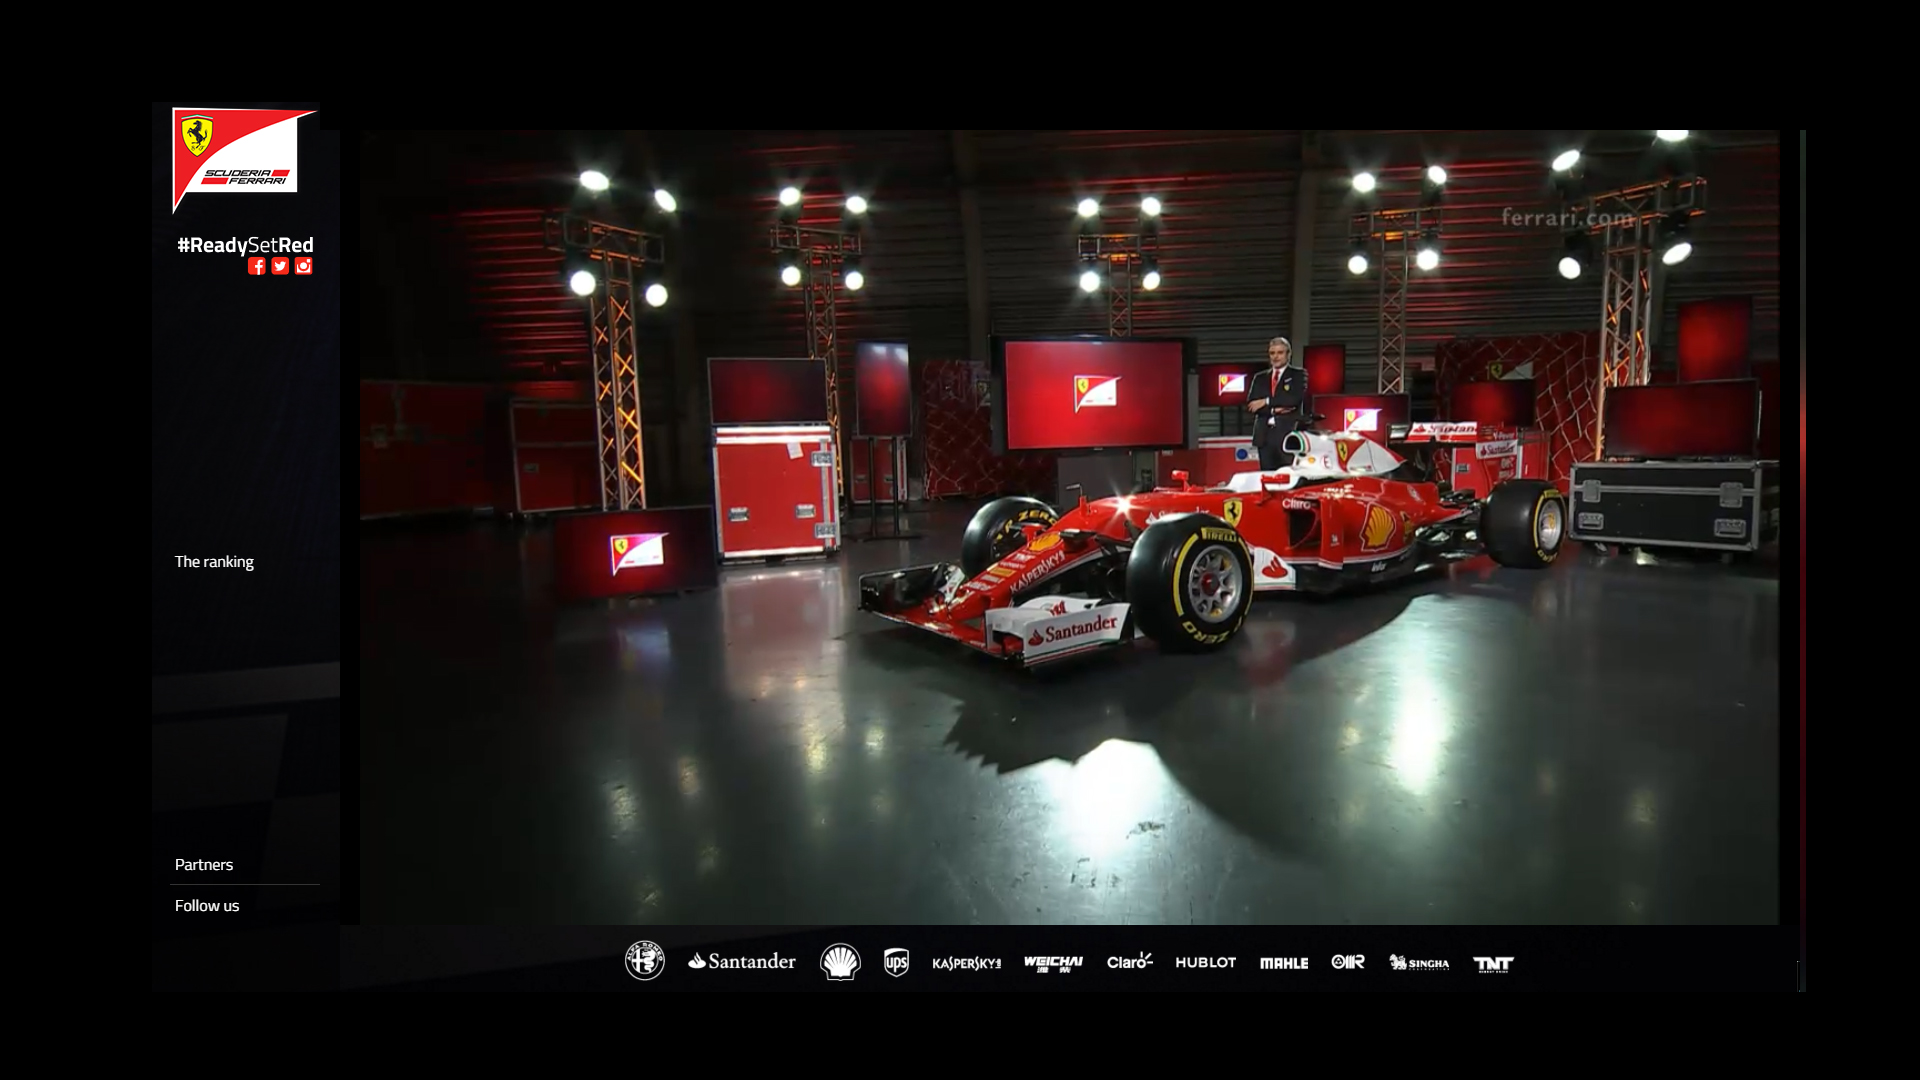 Team reveal via livestream Scuderia Ferrari ReadySetRed SF16-H F1 2016